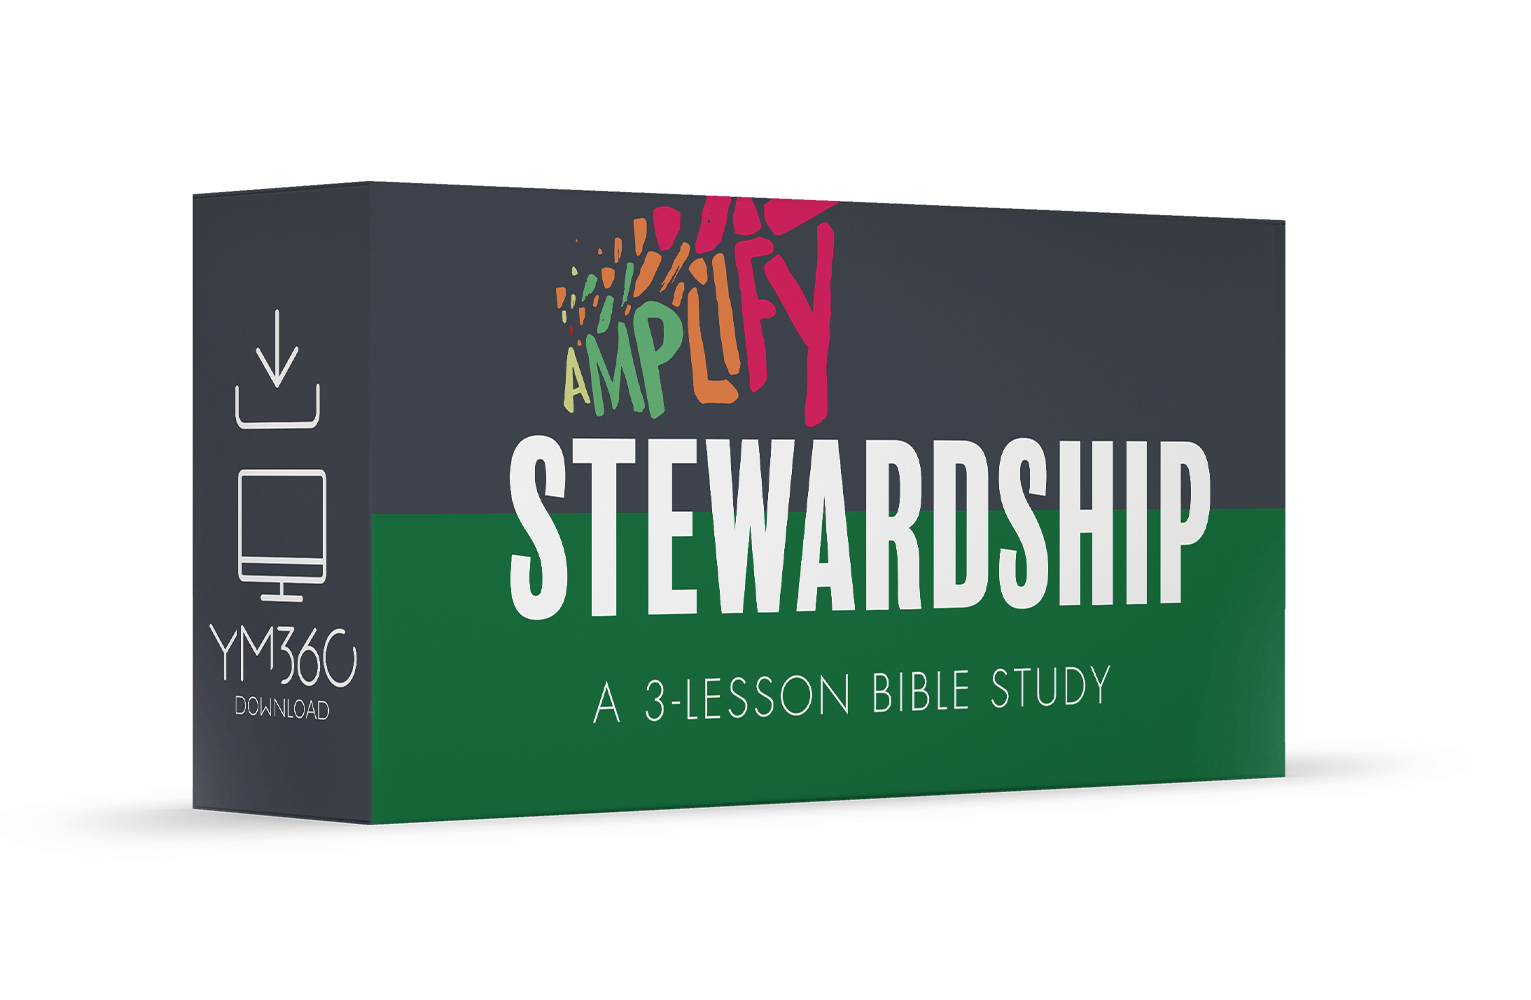 Stewardship: A 3-Lesson Bible Study